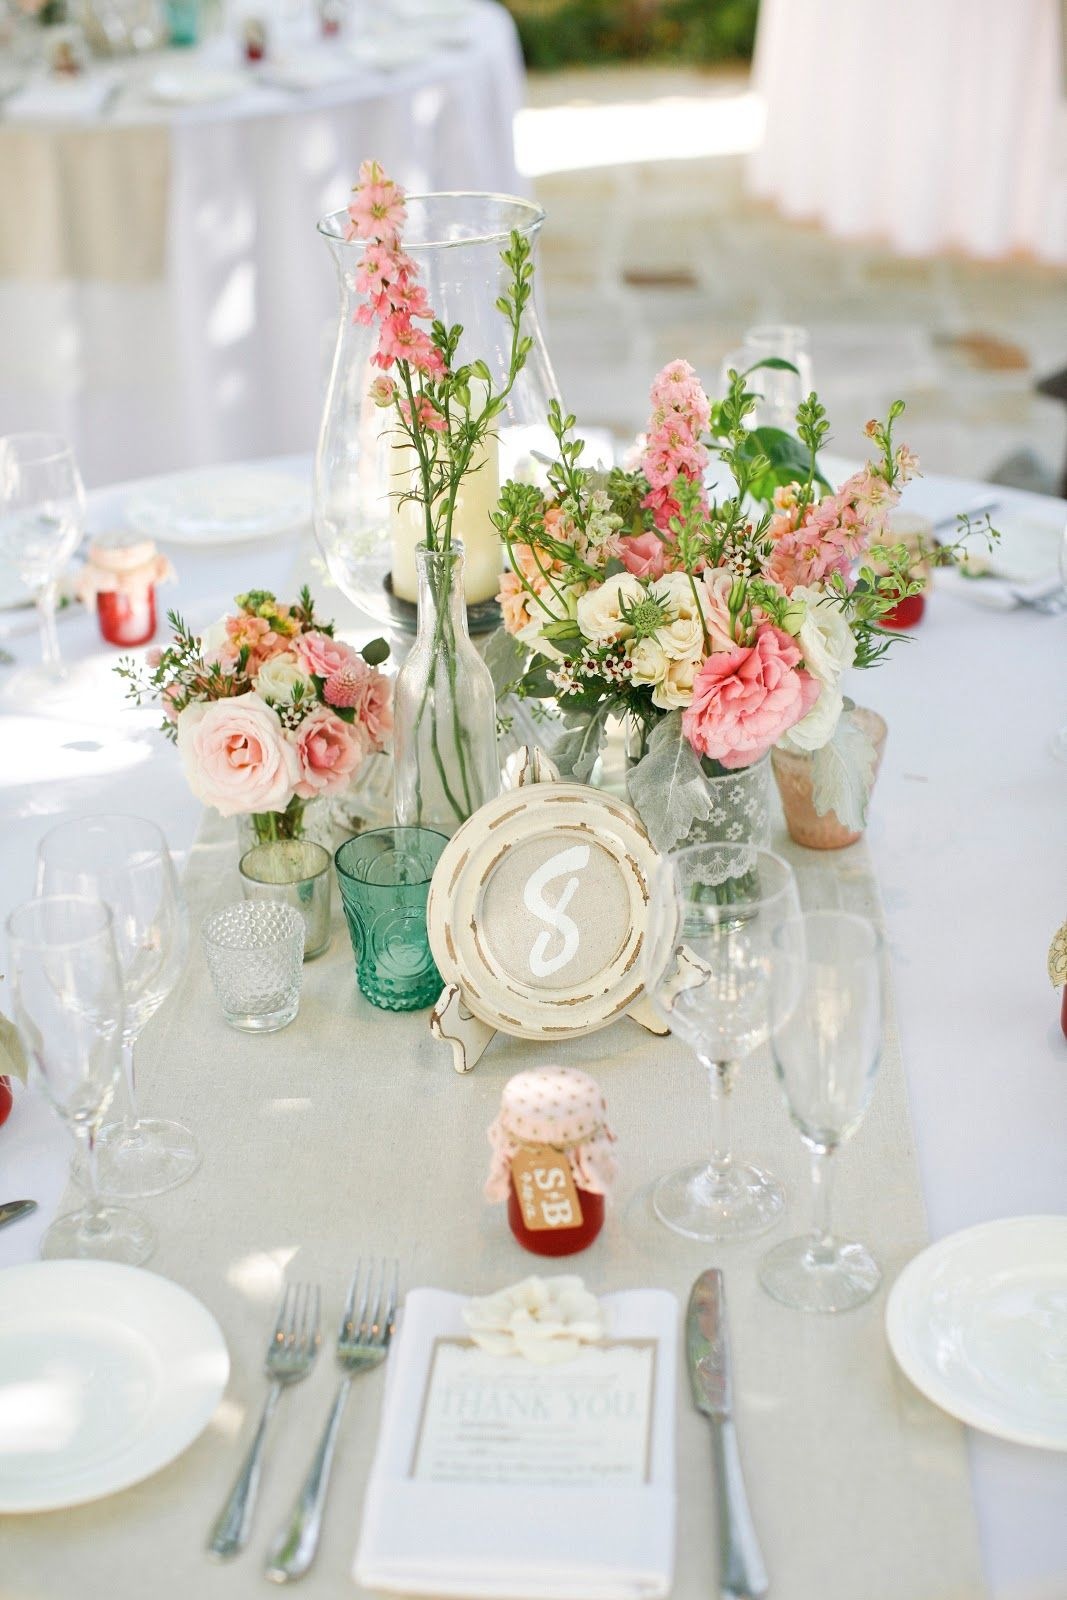 Spreading floral love. | Floral Occasions | Villa SJC Weddings ...